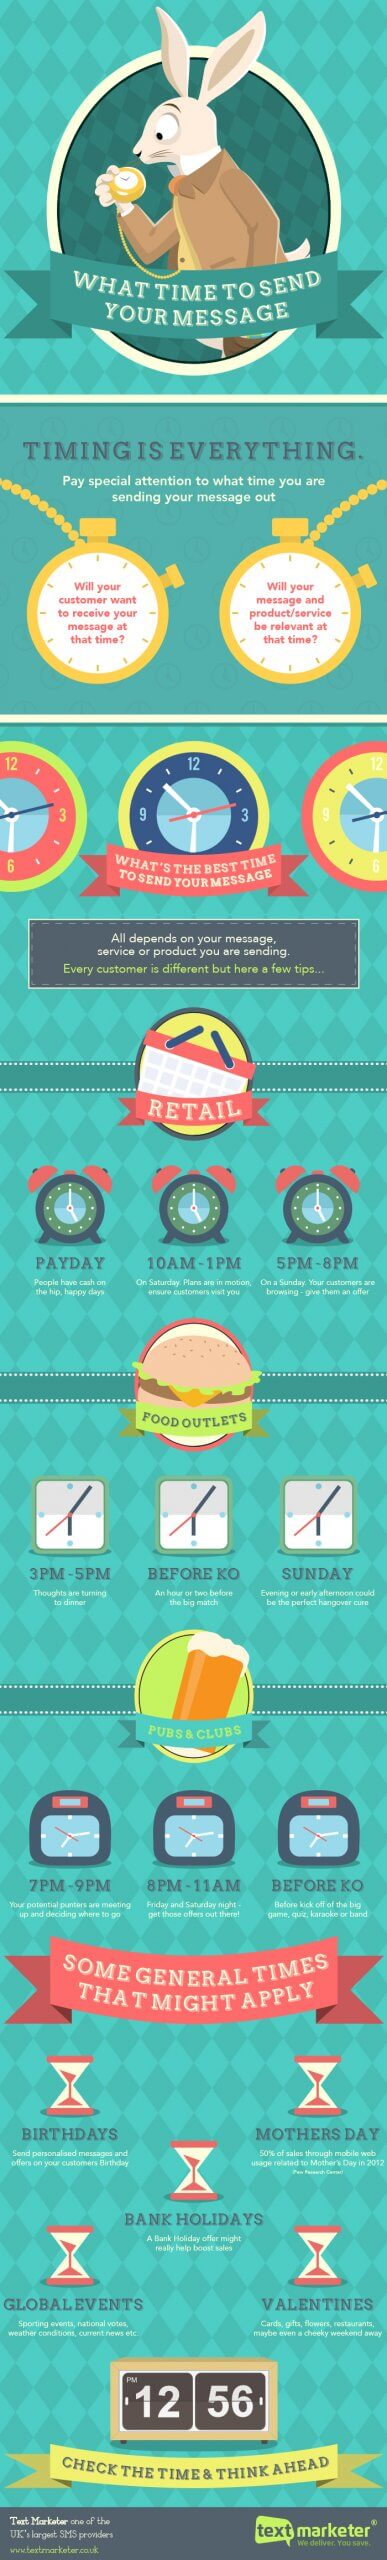 Text Marketer infographic best time to send sms campaigns